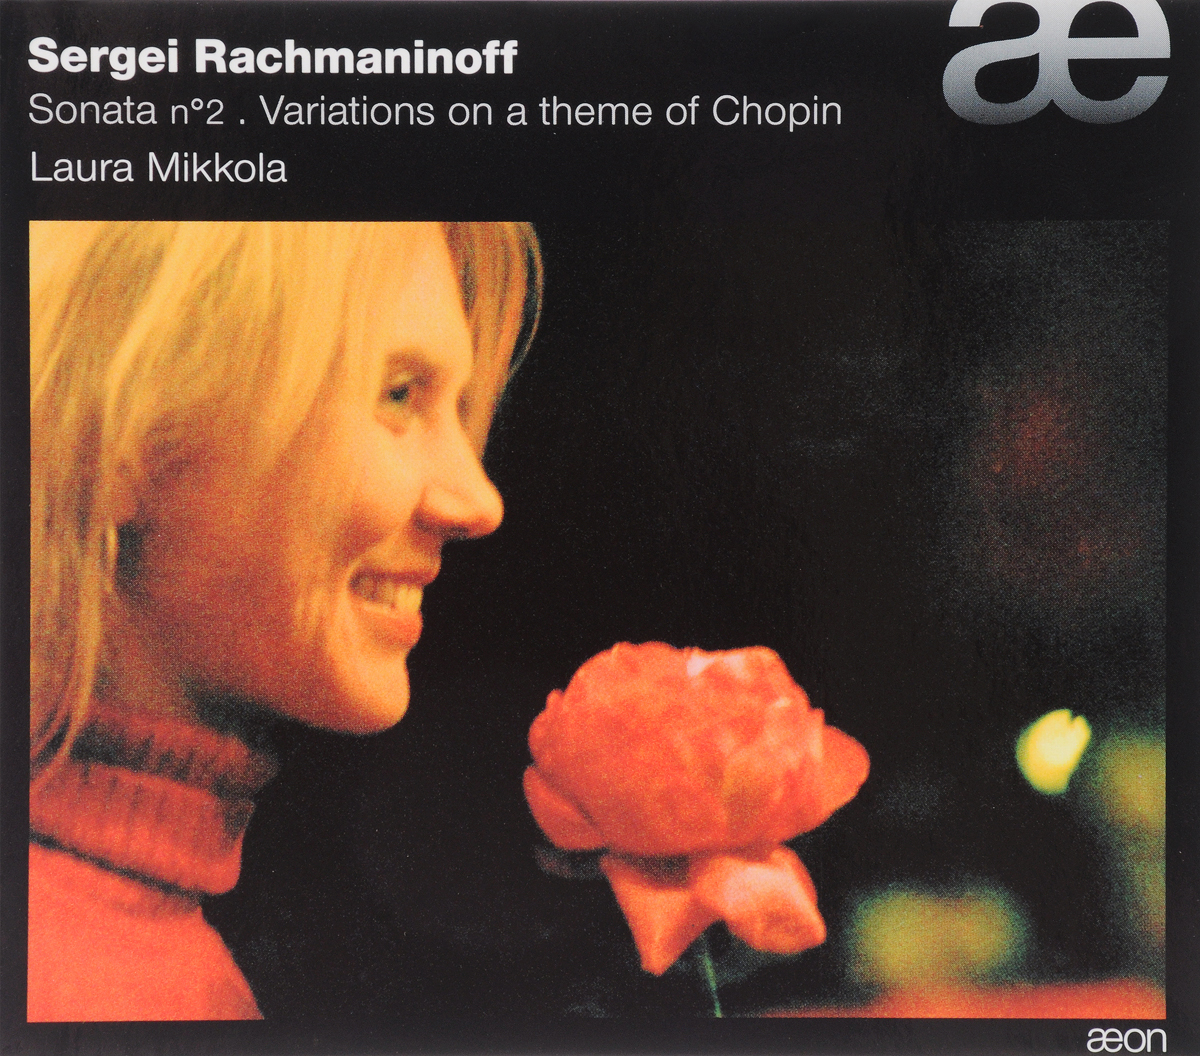 VARIOUS. RACHMANINOV, SERGE/PIANO SONATA NO 2 ; VARIATIONS ON A THEME OF CHOPIN/LAURA MIKKOLA. 1